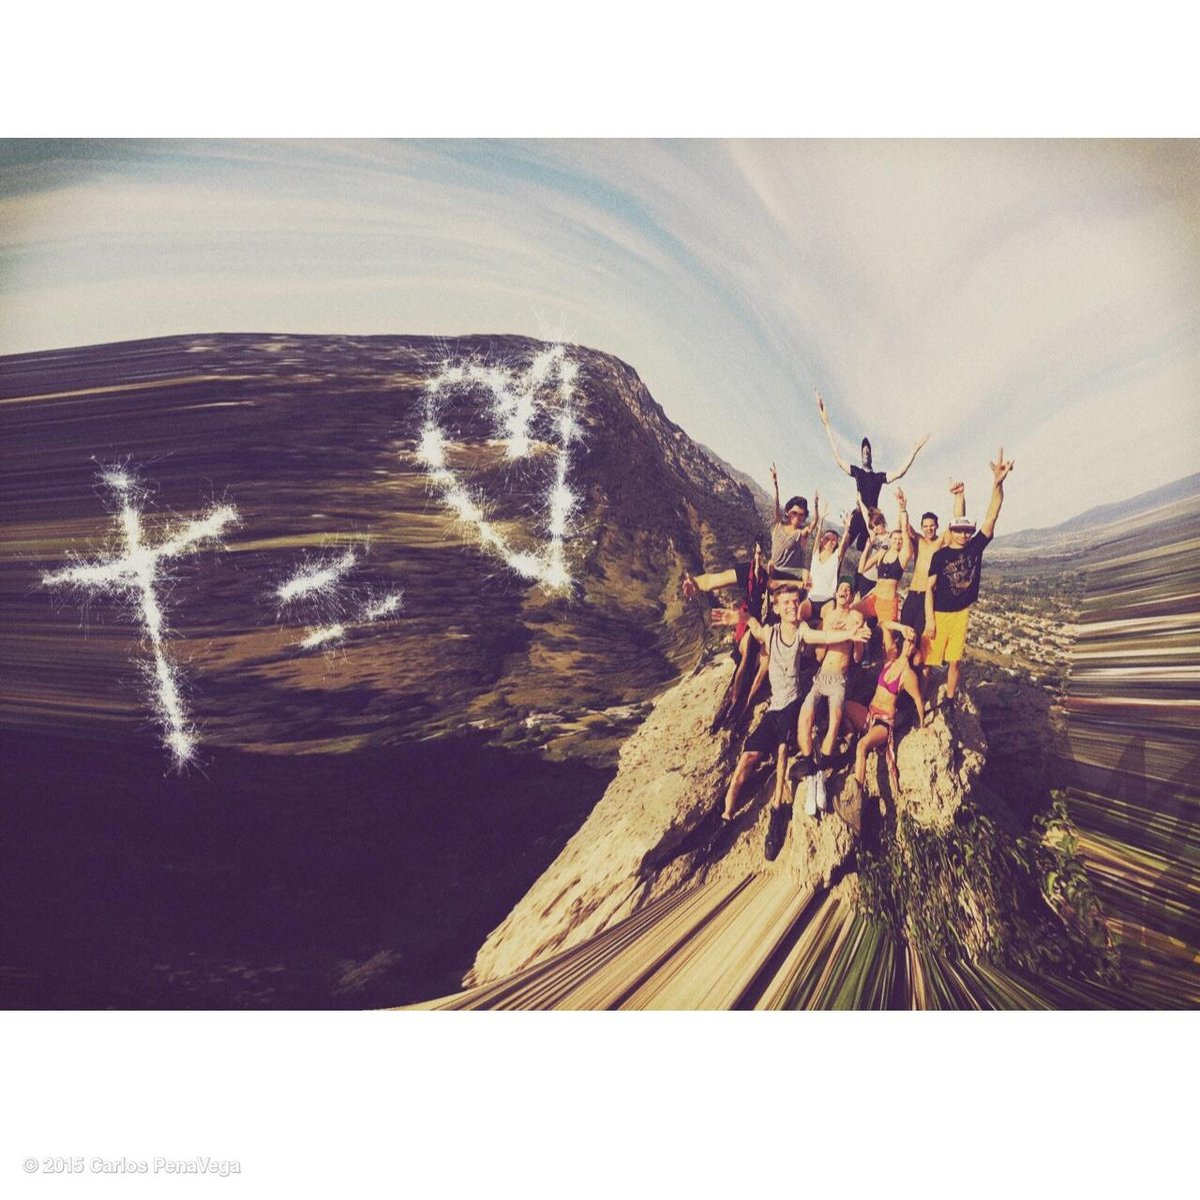 #thecrew #throwback to the amazing hike a few weeks back! @hillsongLA